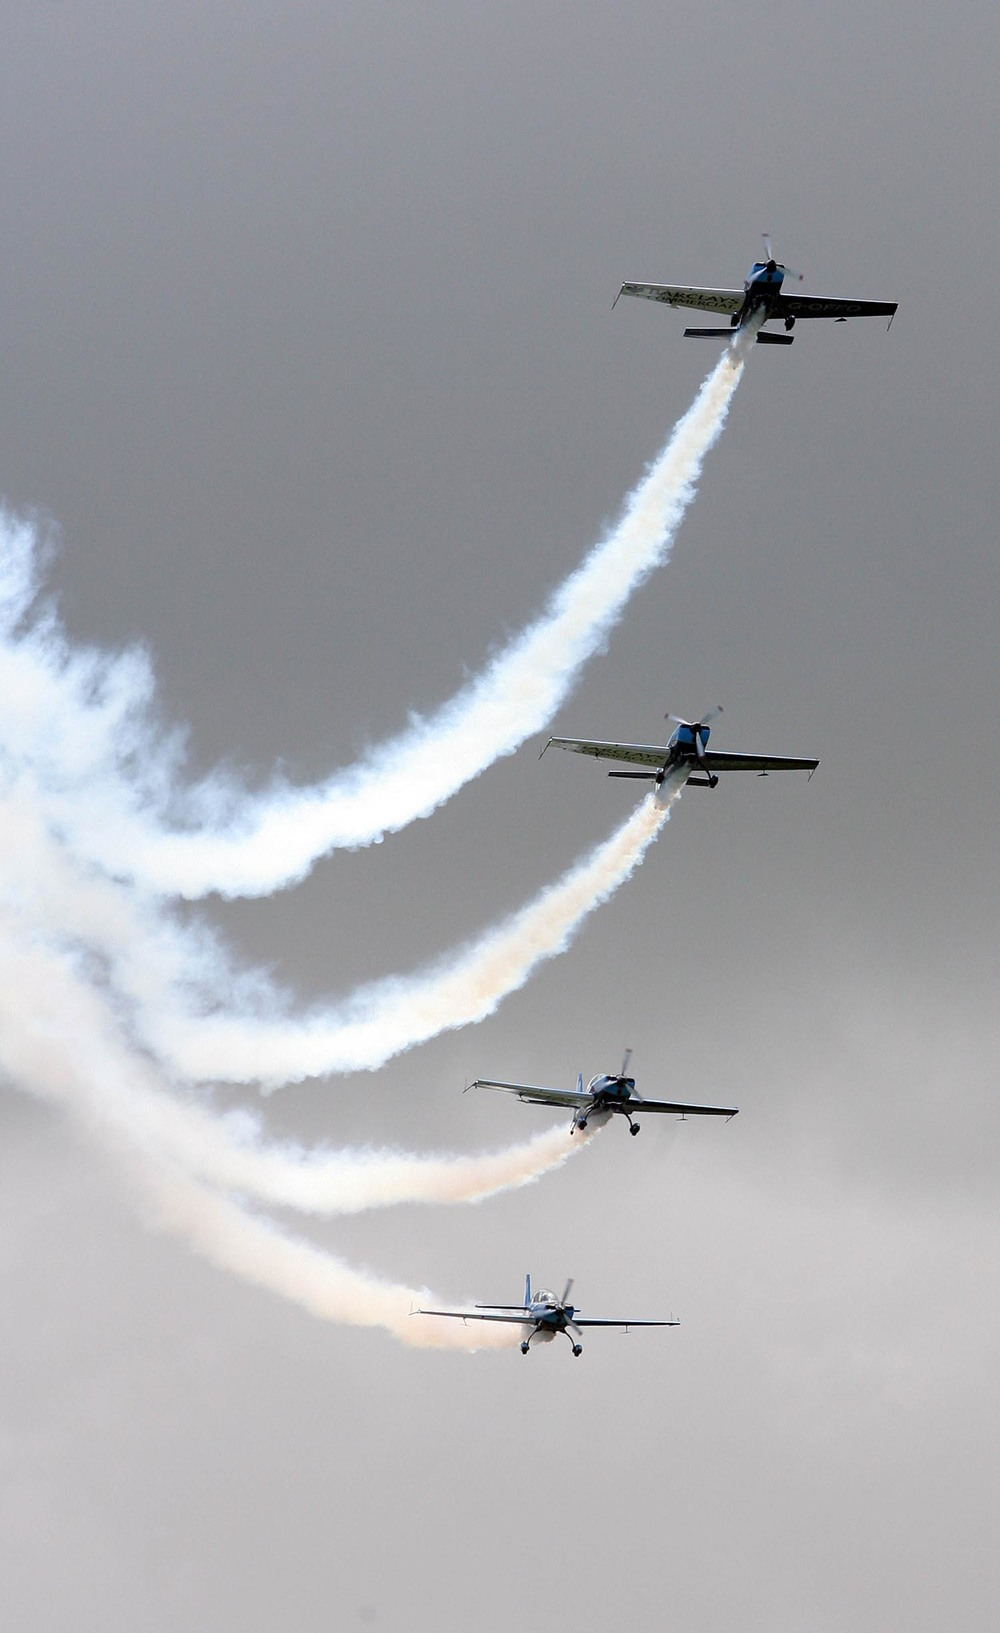 The Blades aerobatic team